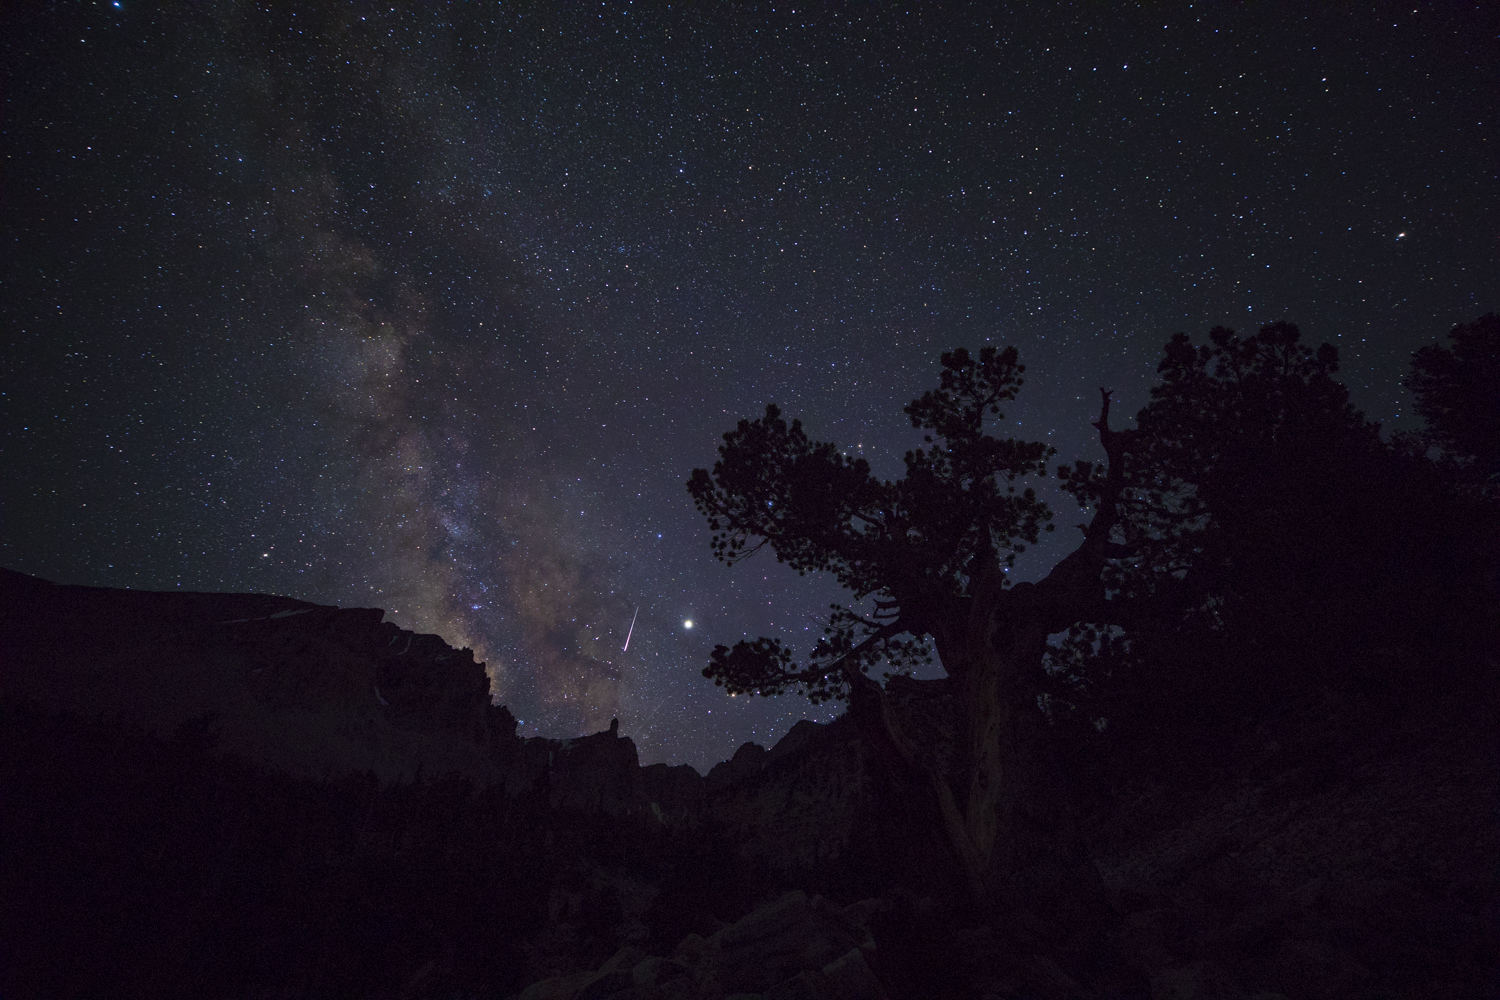 A meteor streaks past Jupiter and the Milky Way in the center of the frame. This is one frame, entirely unprocessed. The final product will show the details of the mountains and the Bristlecone Pine in the foreground, in addition to revealing sharper detail in the night sky.